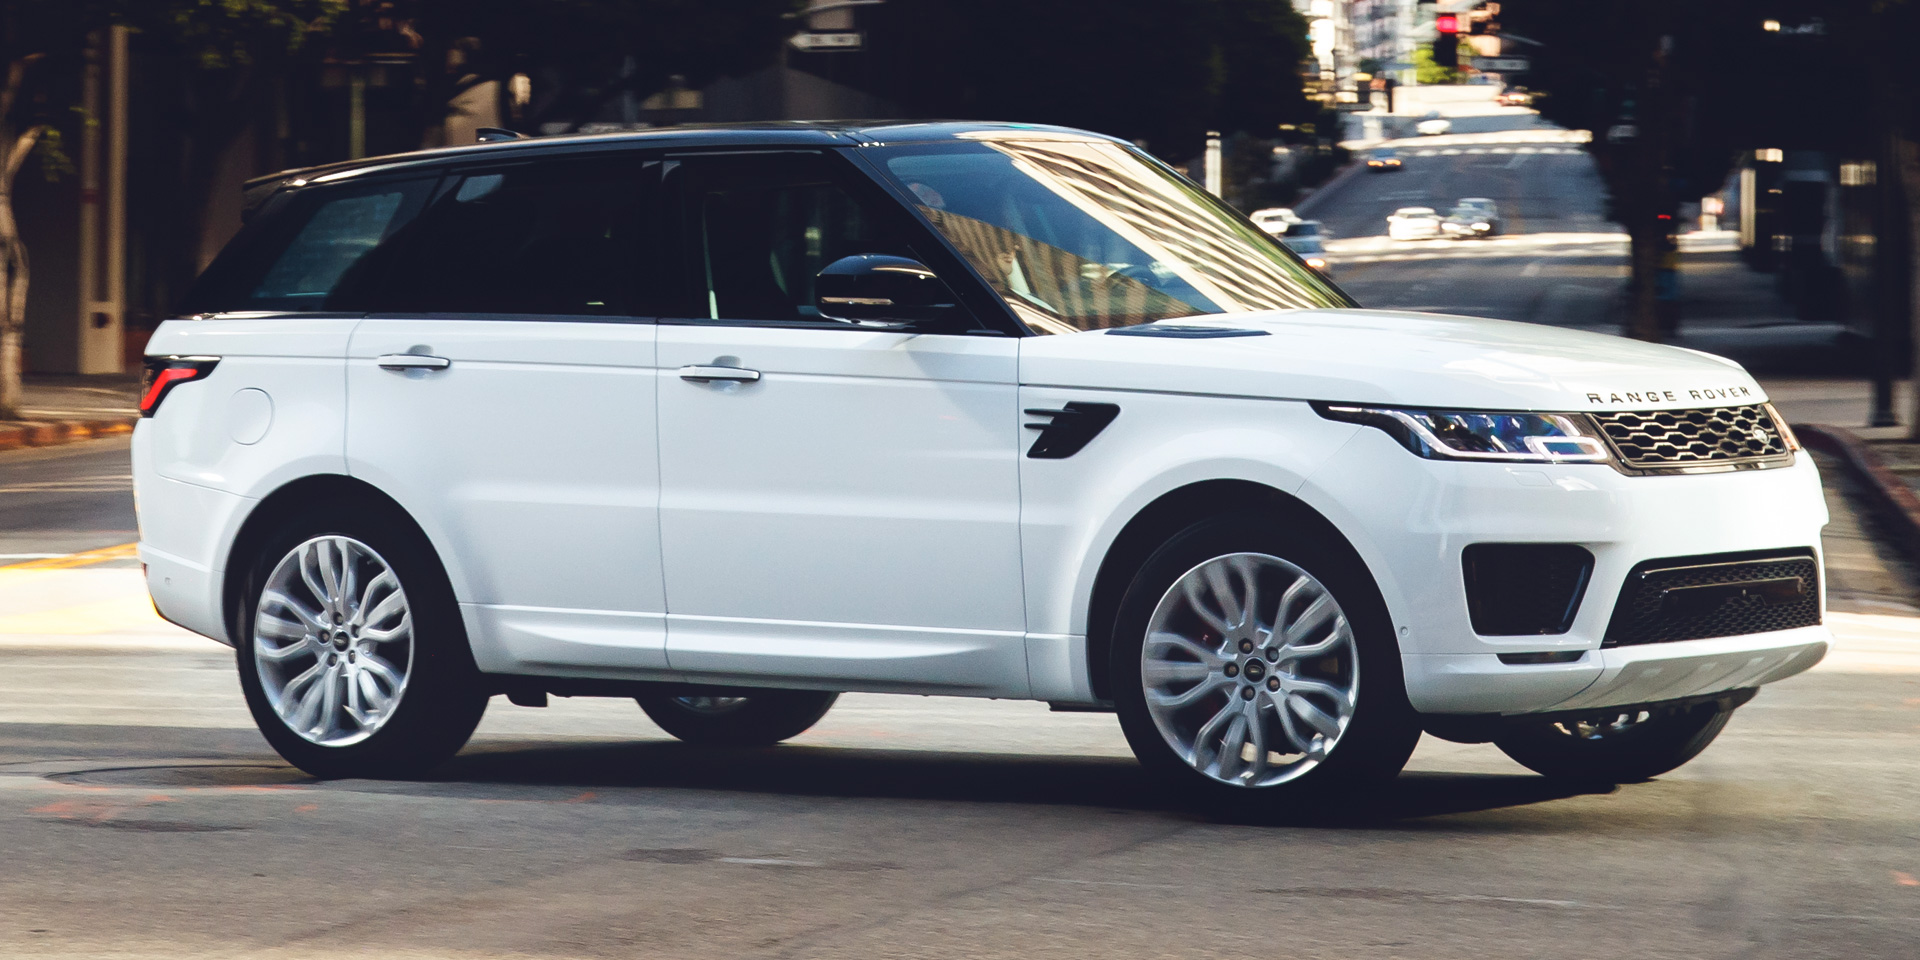 2018 Land Rover Range Rover Sport Vehicles On